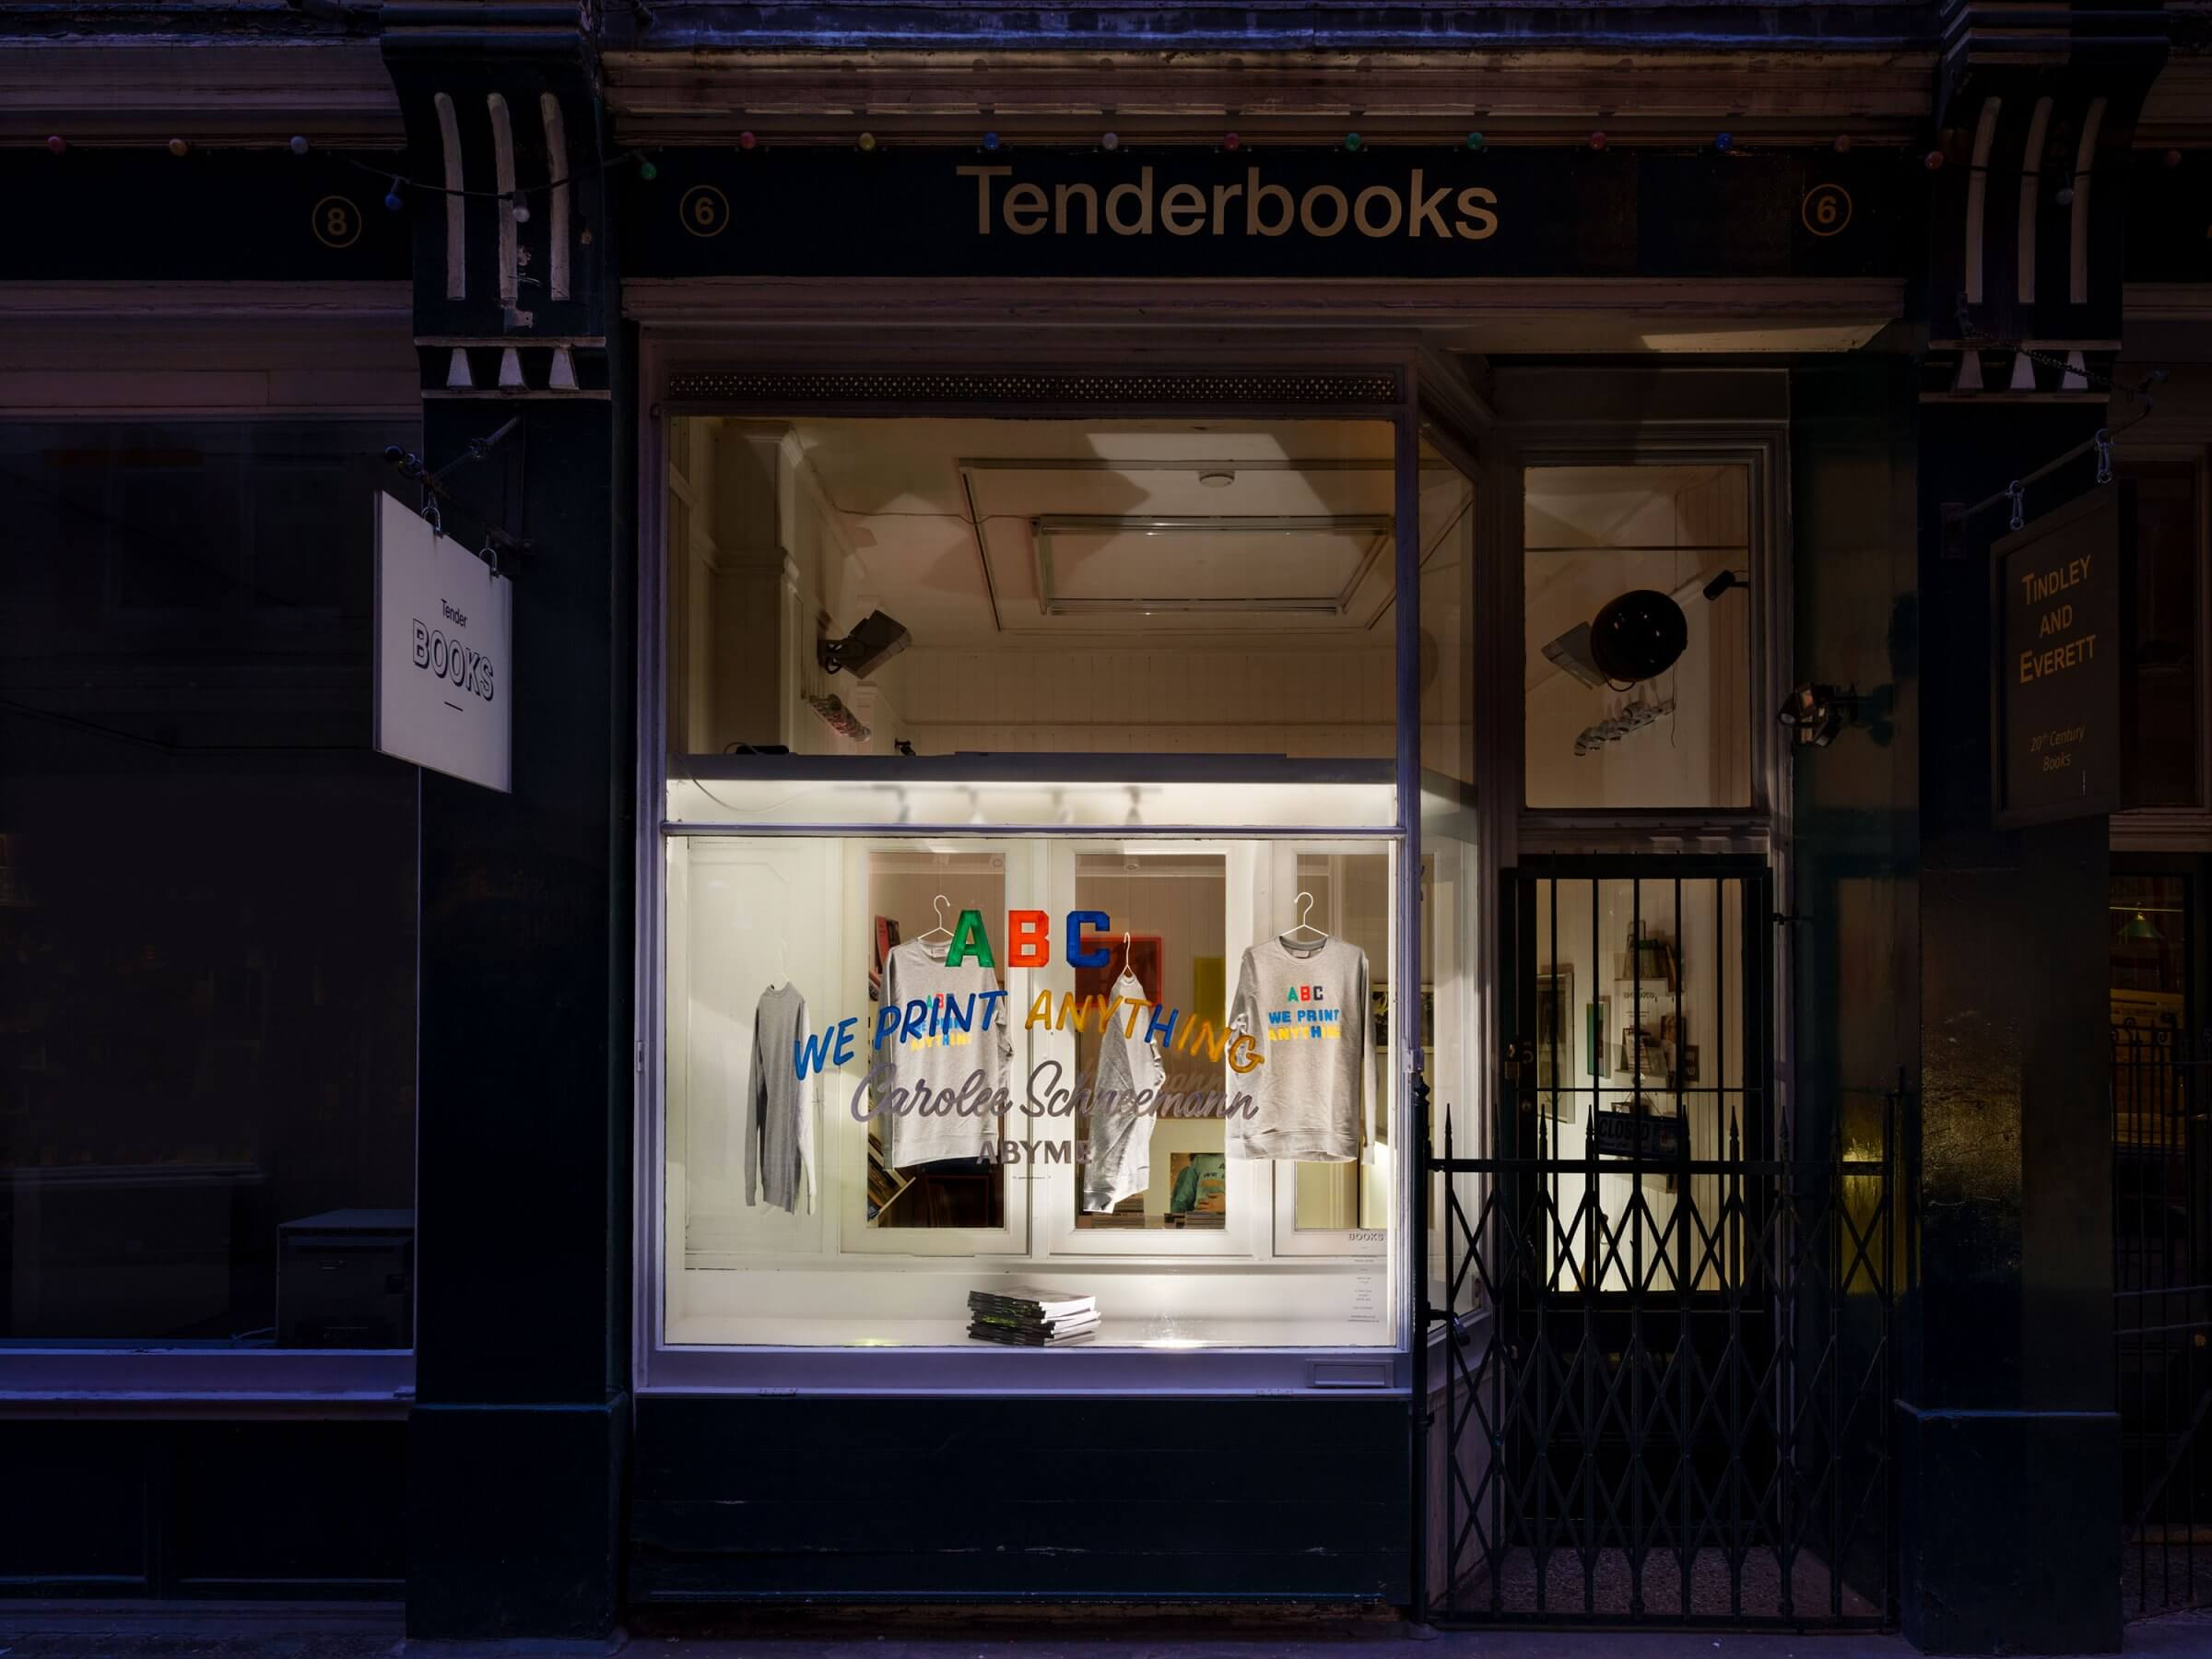 Tenderbooks - Opening Hours:Tuesday to Saturday 11am-7pm& by appointmentCall: 020 7379 9464Email: mail@tenderbooks.co.uk